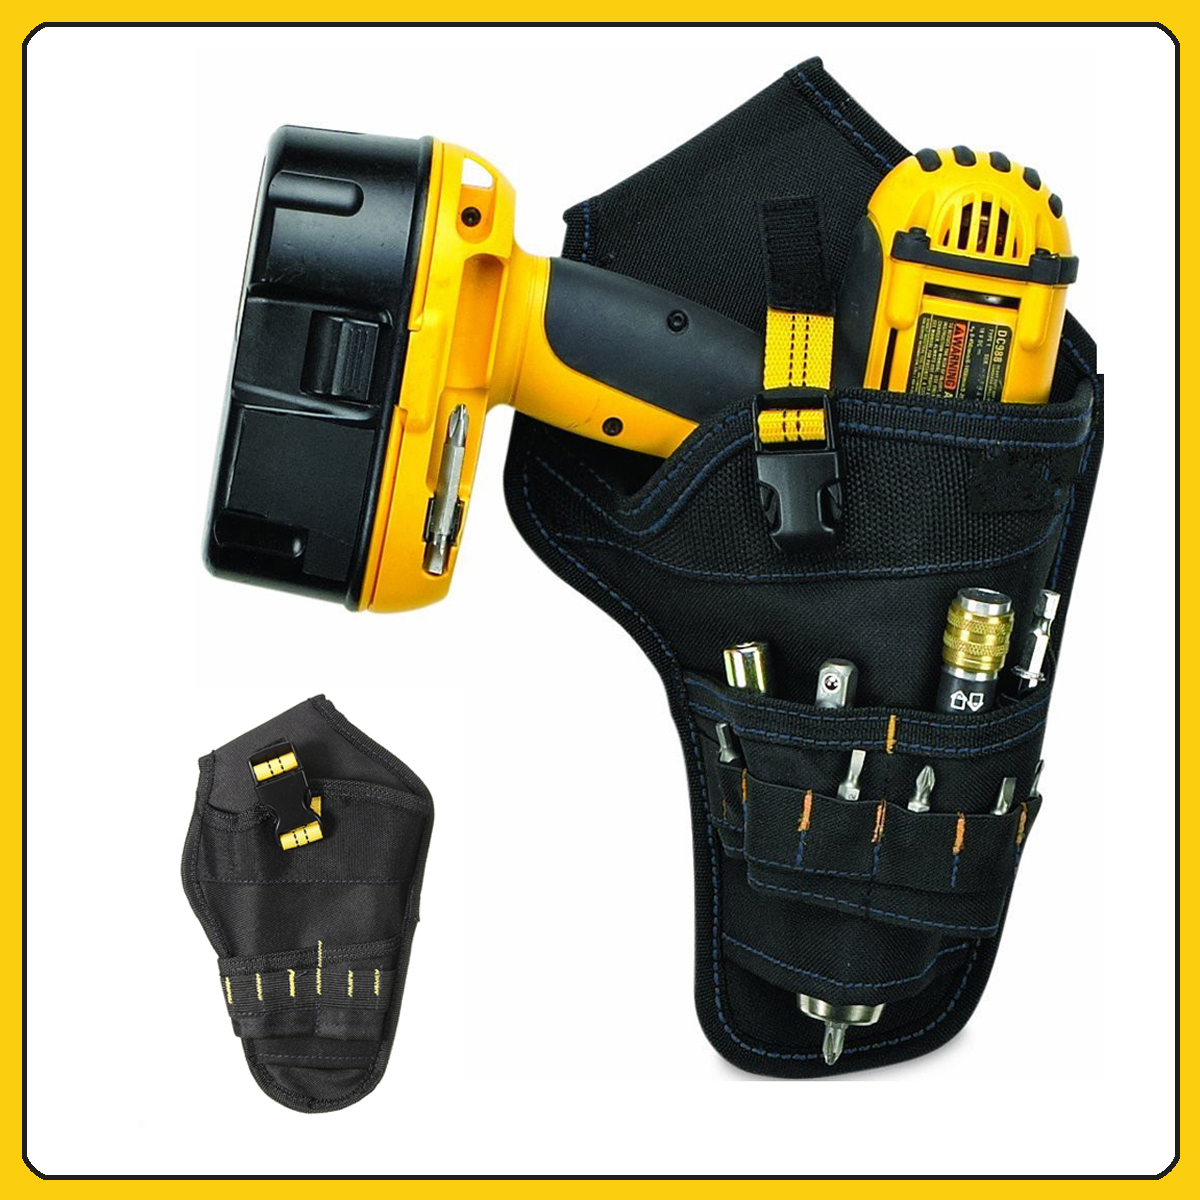 Drill Cordless Tool Holder Heavy Duty Black Belt Pouch Bag Pocket